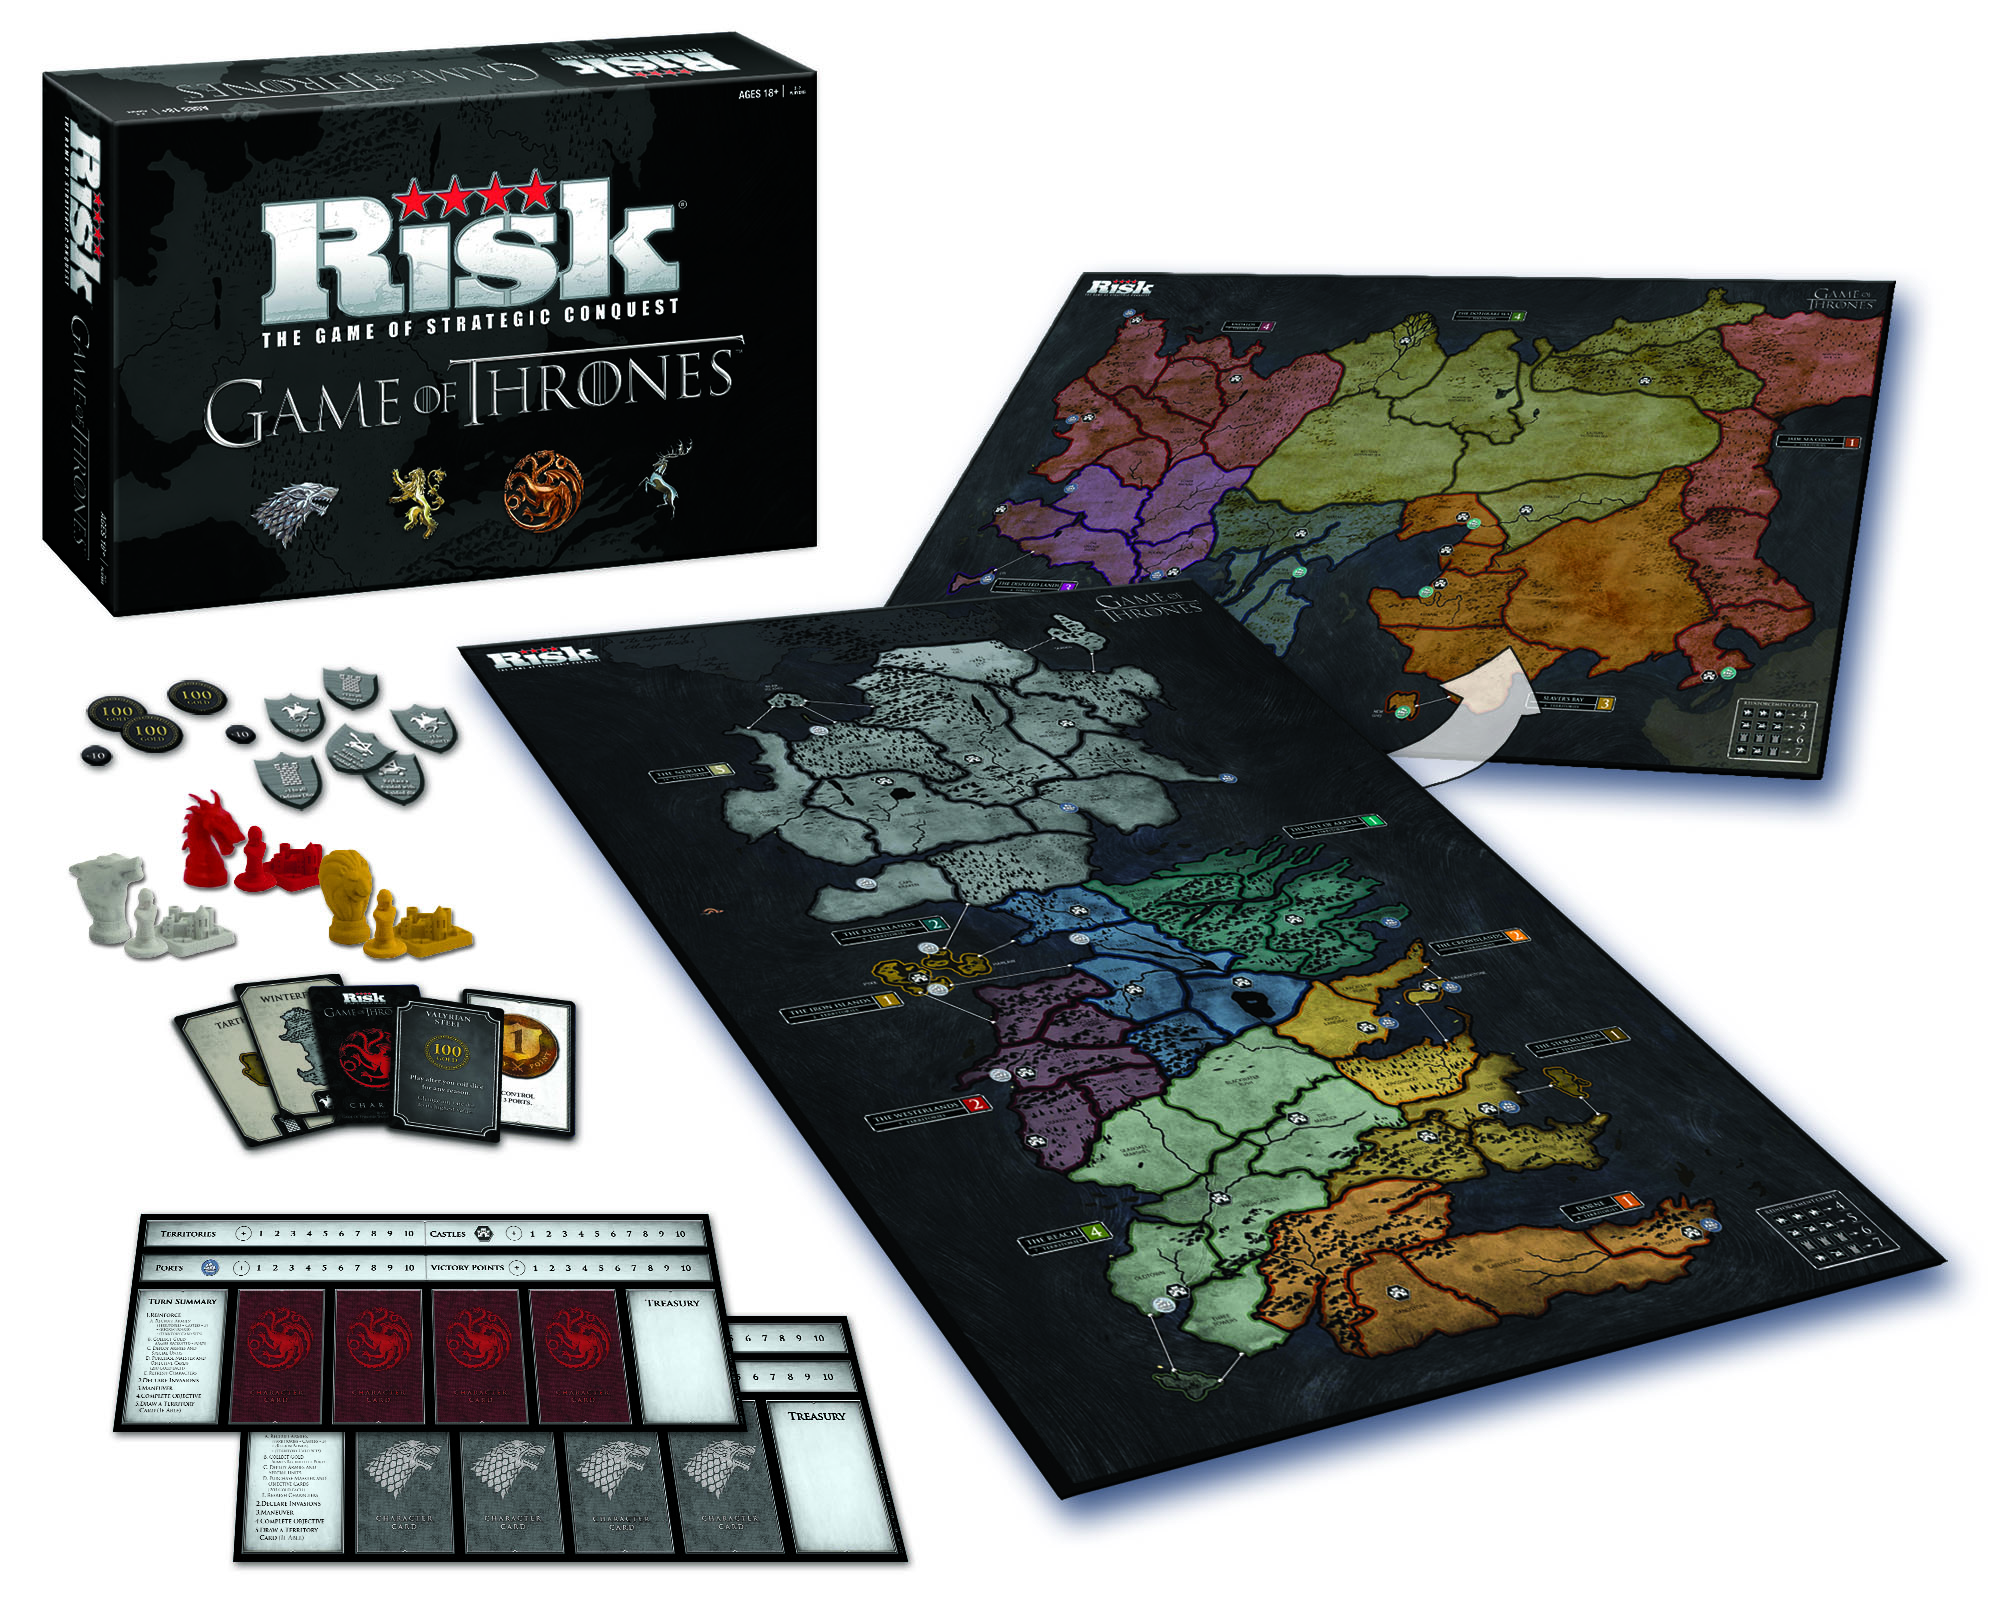 RISK Comes To Game Of Thrones